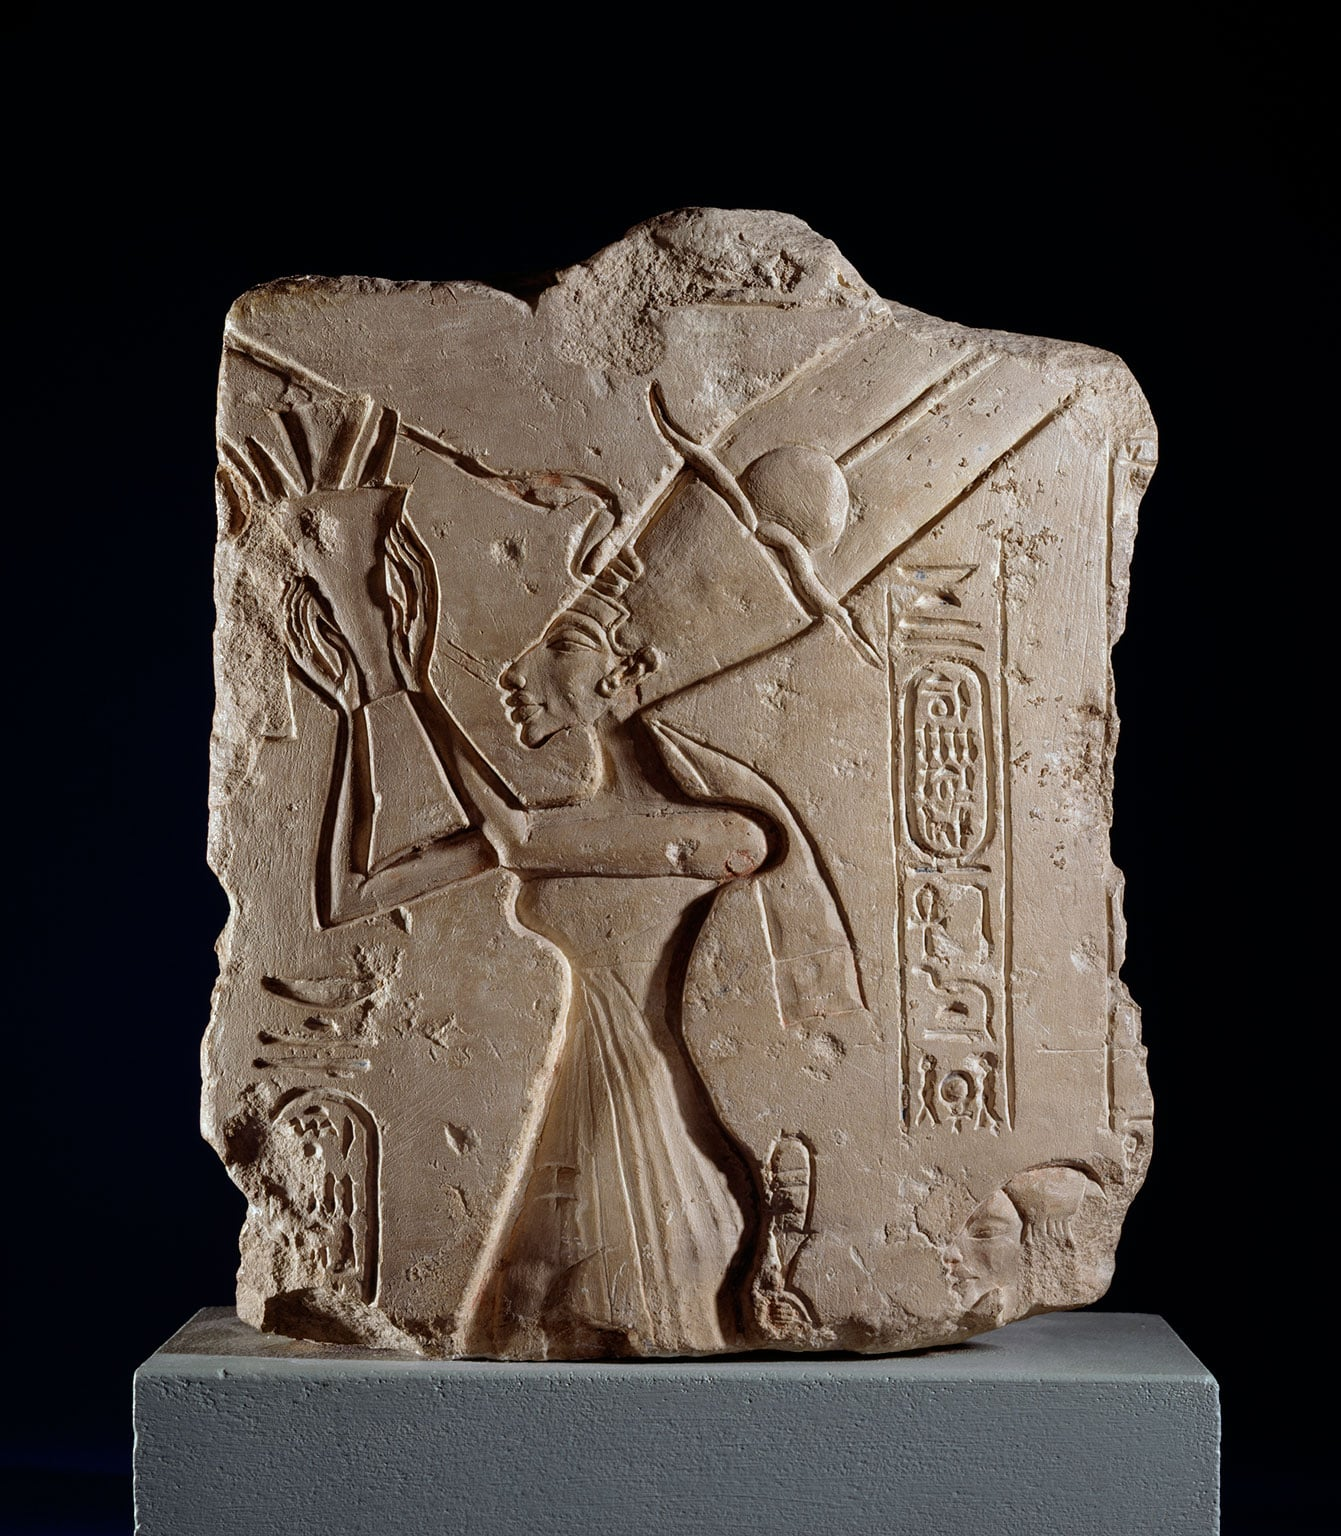 Queen Nefertiti offering a bouquet to Aten, From Tell el-Amarna, possibly the Great Palace, 18th Dynasty, c.1345 BC